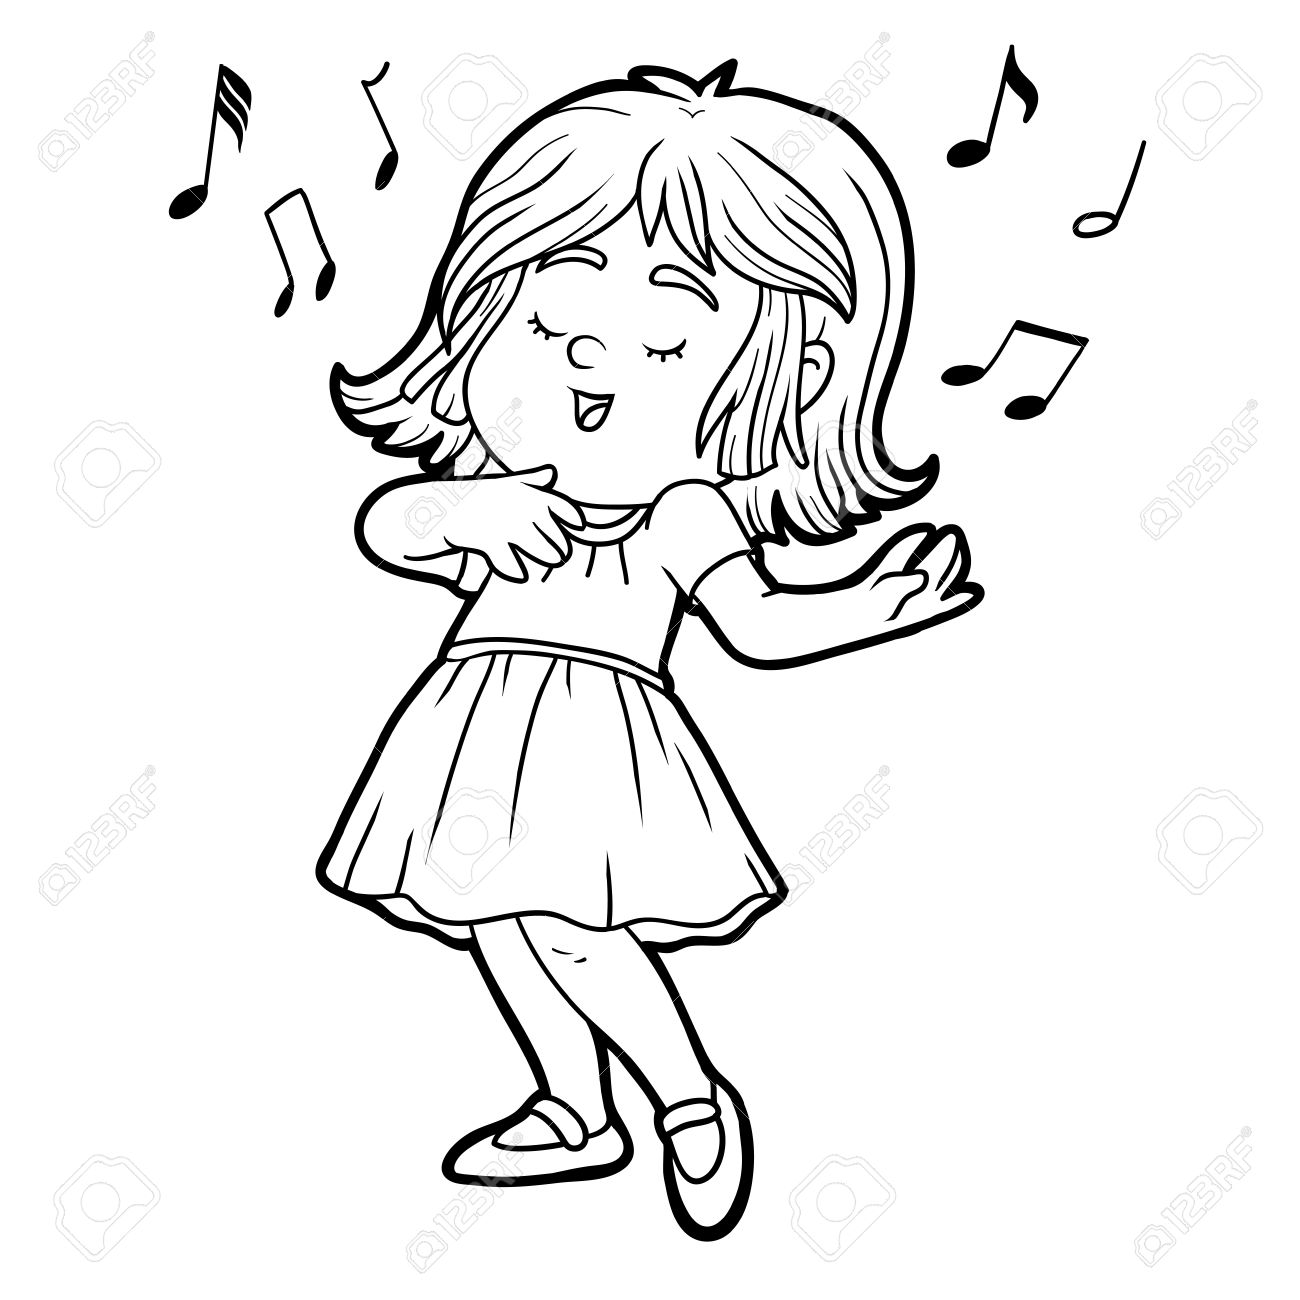 Coloring Book For Children: Little Girl In A Red Dress Is Singing ...